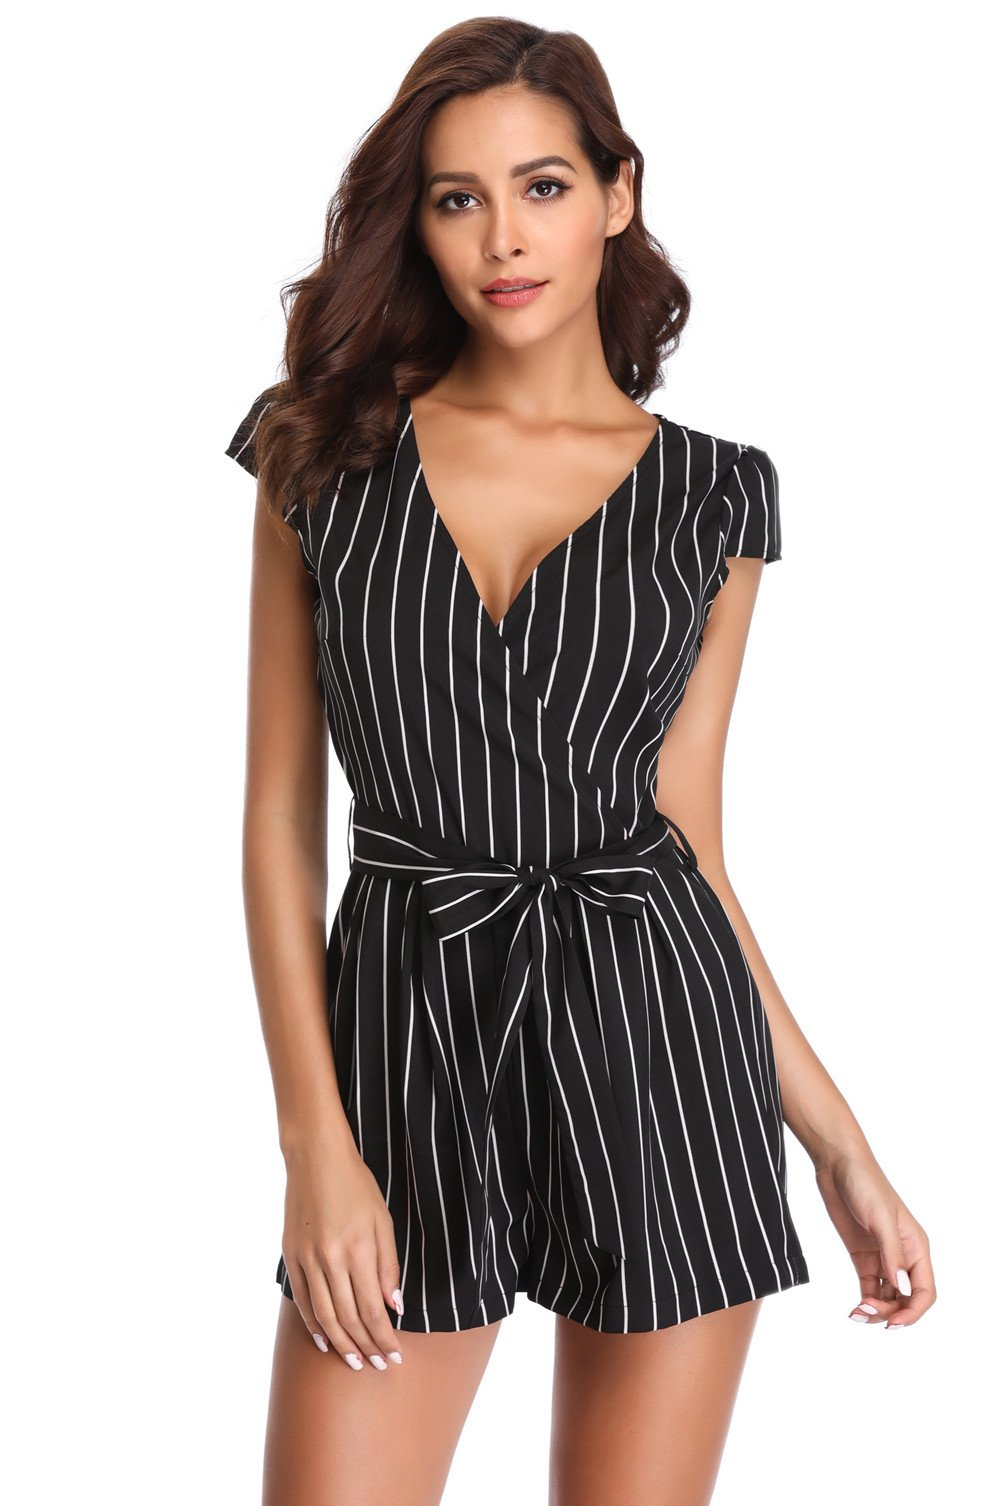 MISS MOLY Rompers for Women Deep V Neck Cap Short Sleeves Crossover Mid Rise Casual Vertical Jumpsuit with Belt